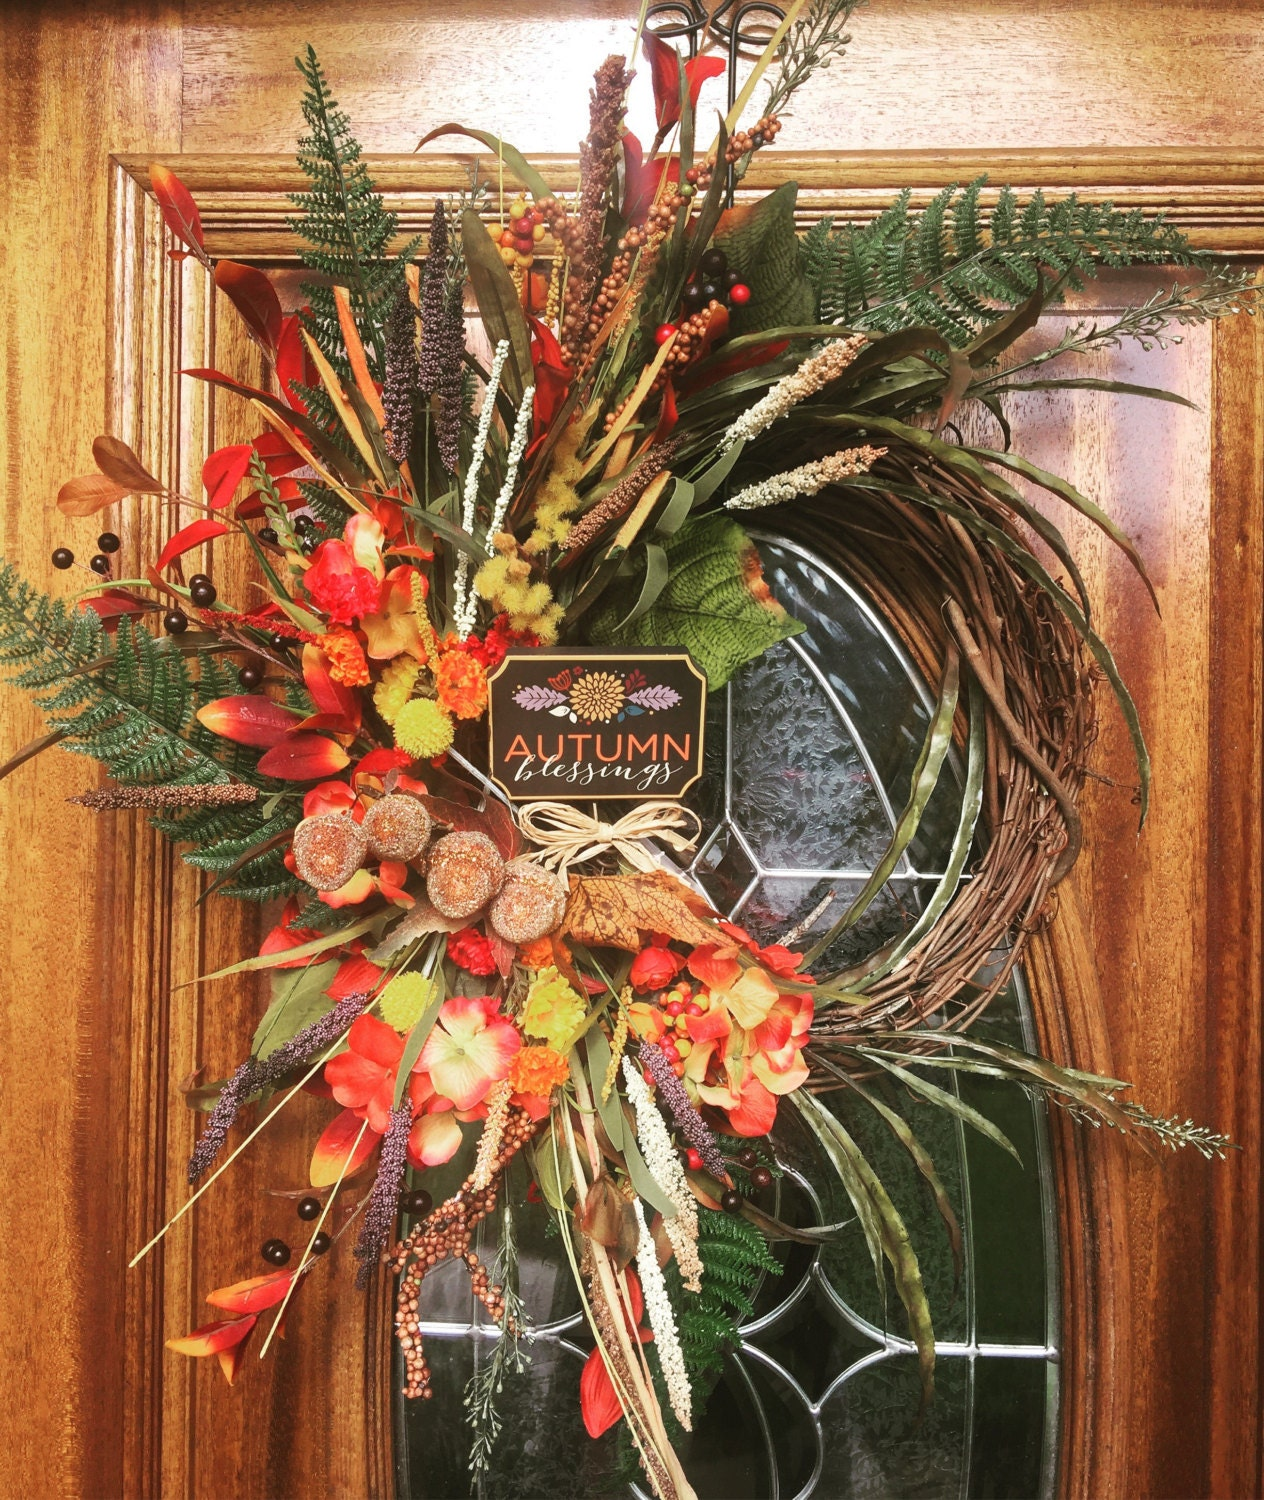 Fall wreaths for front door fall door wreaths fall door Fall autumn door wreaths